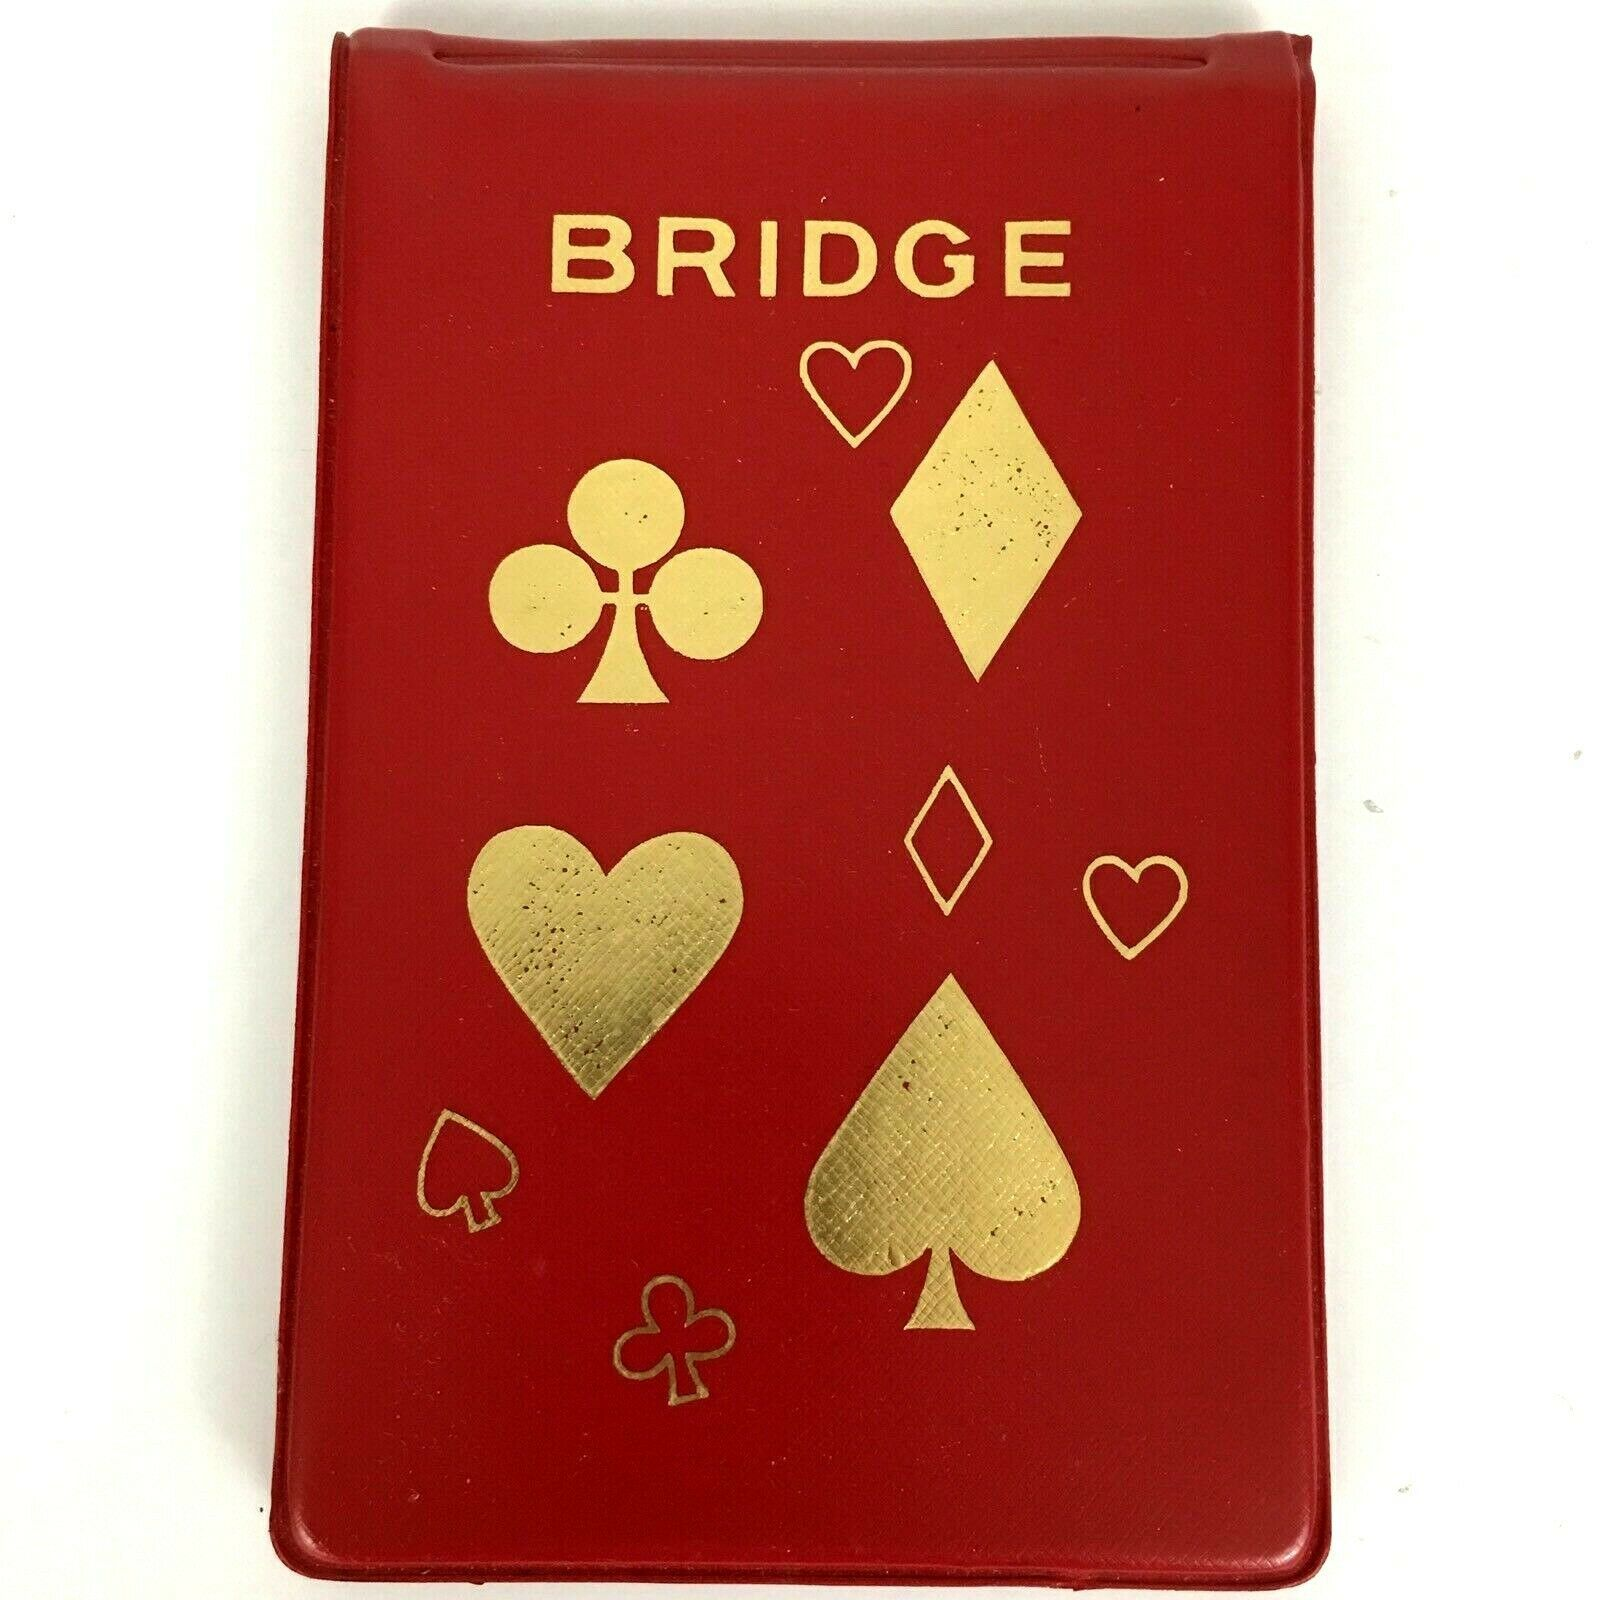 Primary image for VTG Schlesinger's Contract Bridge Red Tally Score Pad And Rules Vinyl Holder